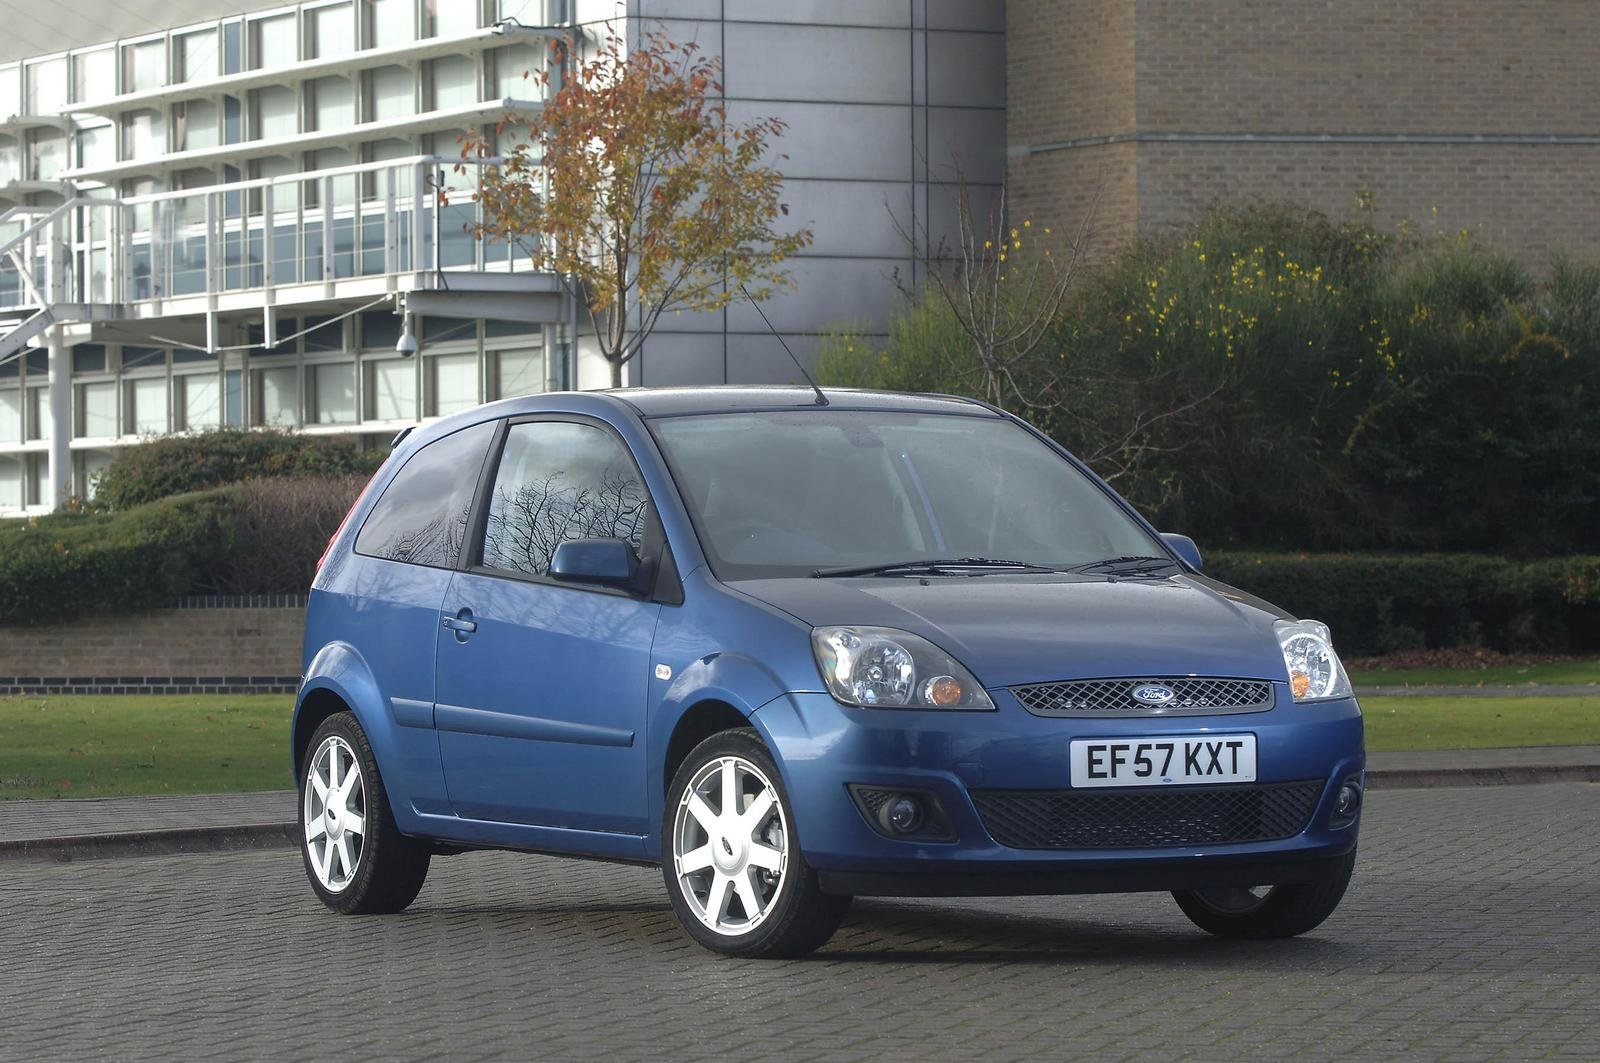 2007 Ford Fiesta Zetec Blue Pictures Photos Wallpapers